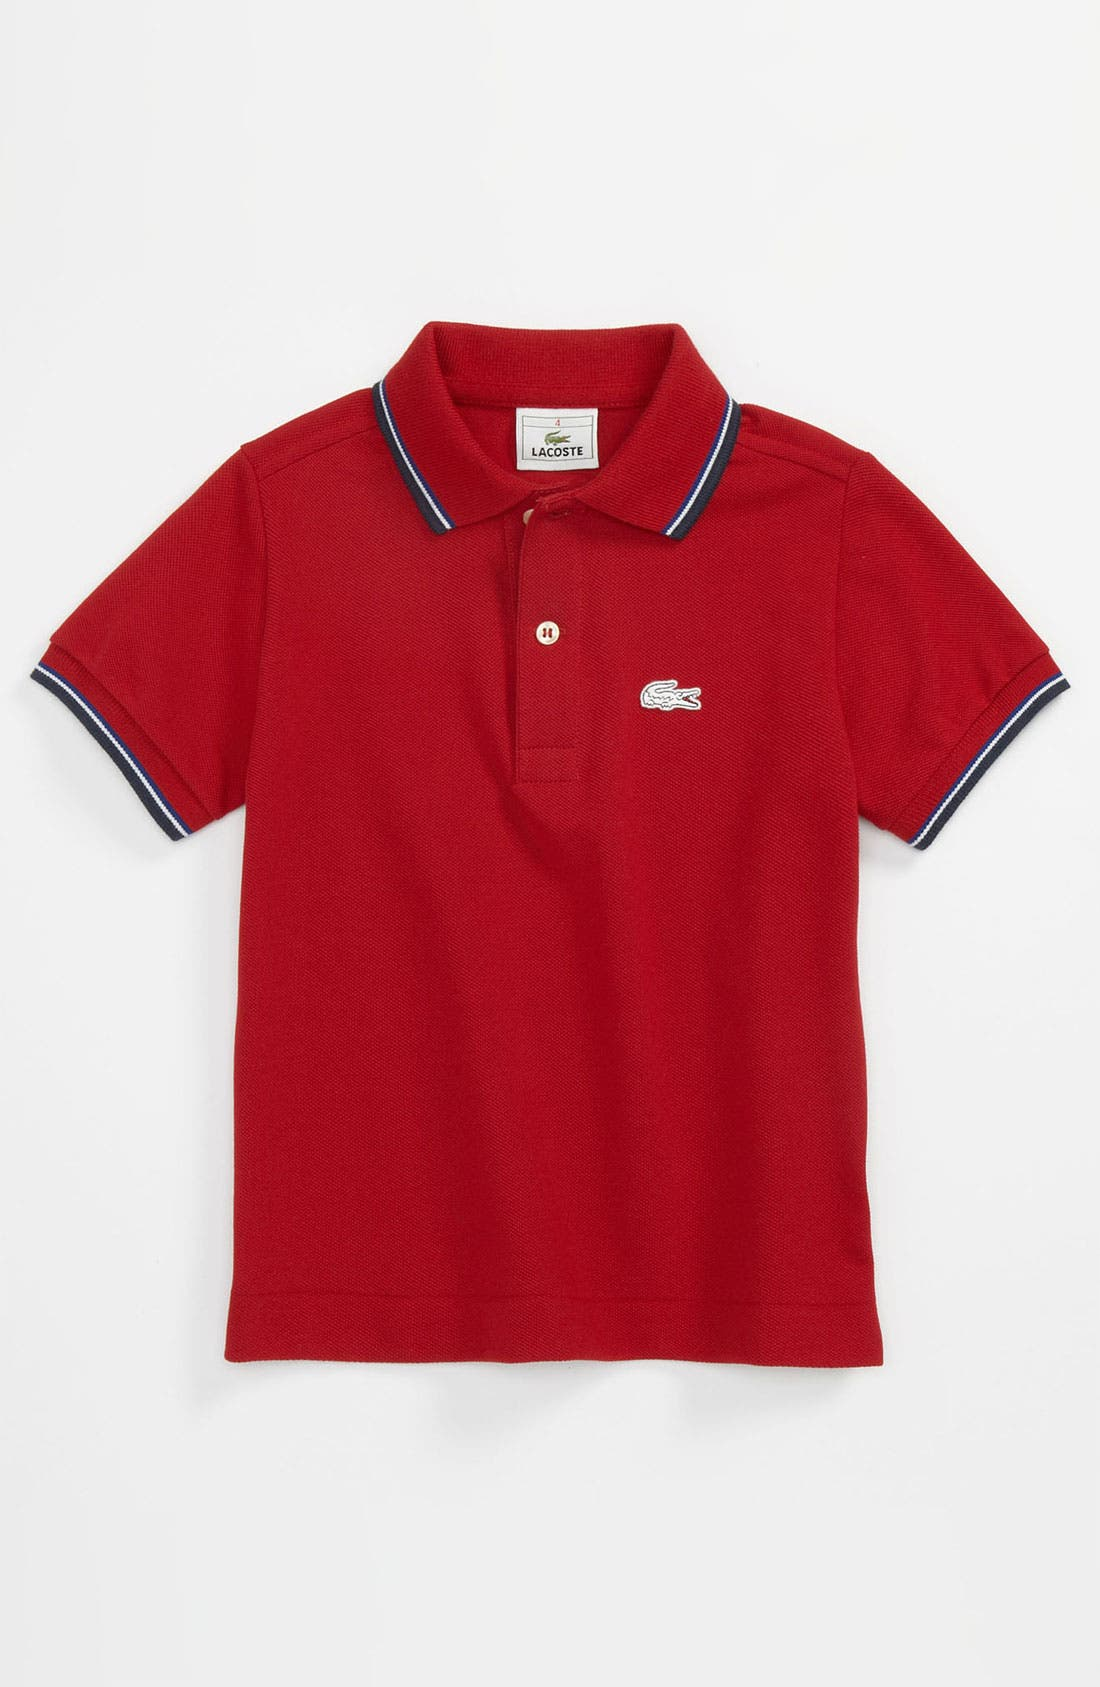 Alternate Image 1 Selected - Lacoste Piqué Knit Polo Shirt (Toddler)